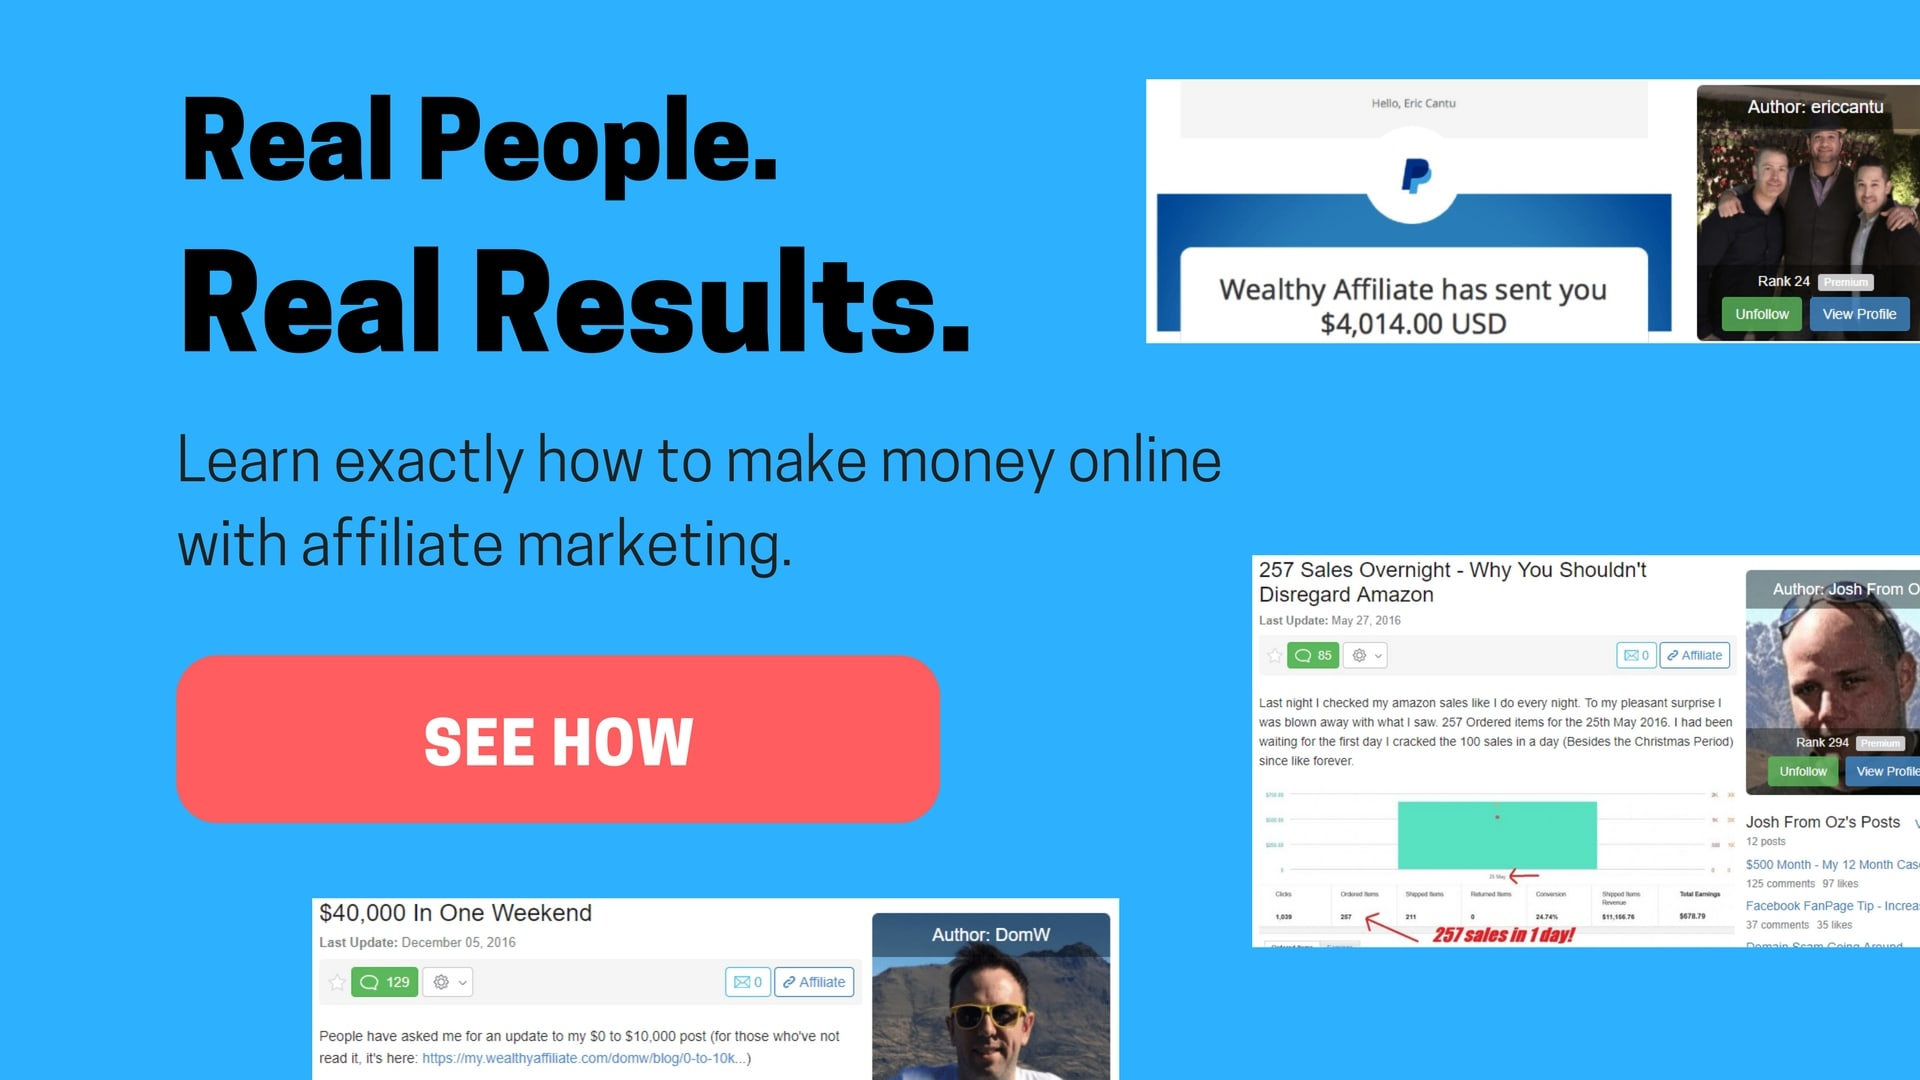 Real results - how to make money online with affiliate marketing